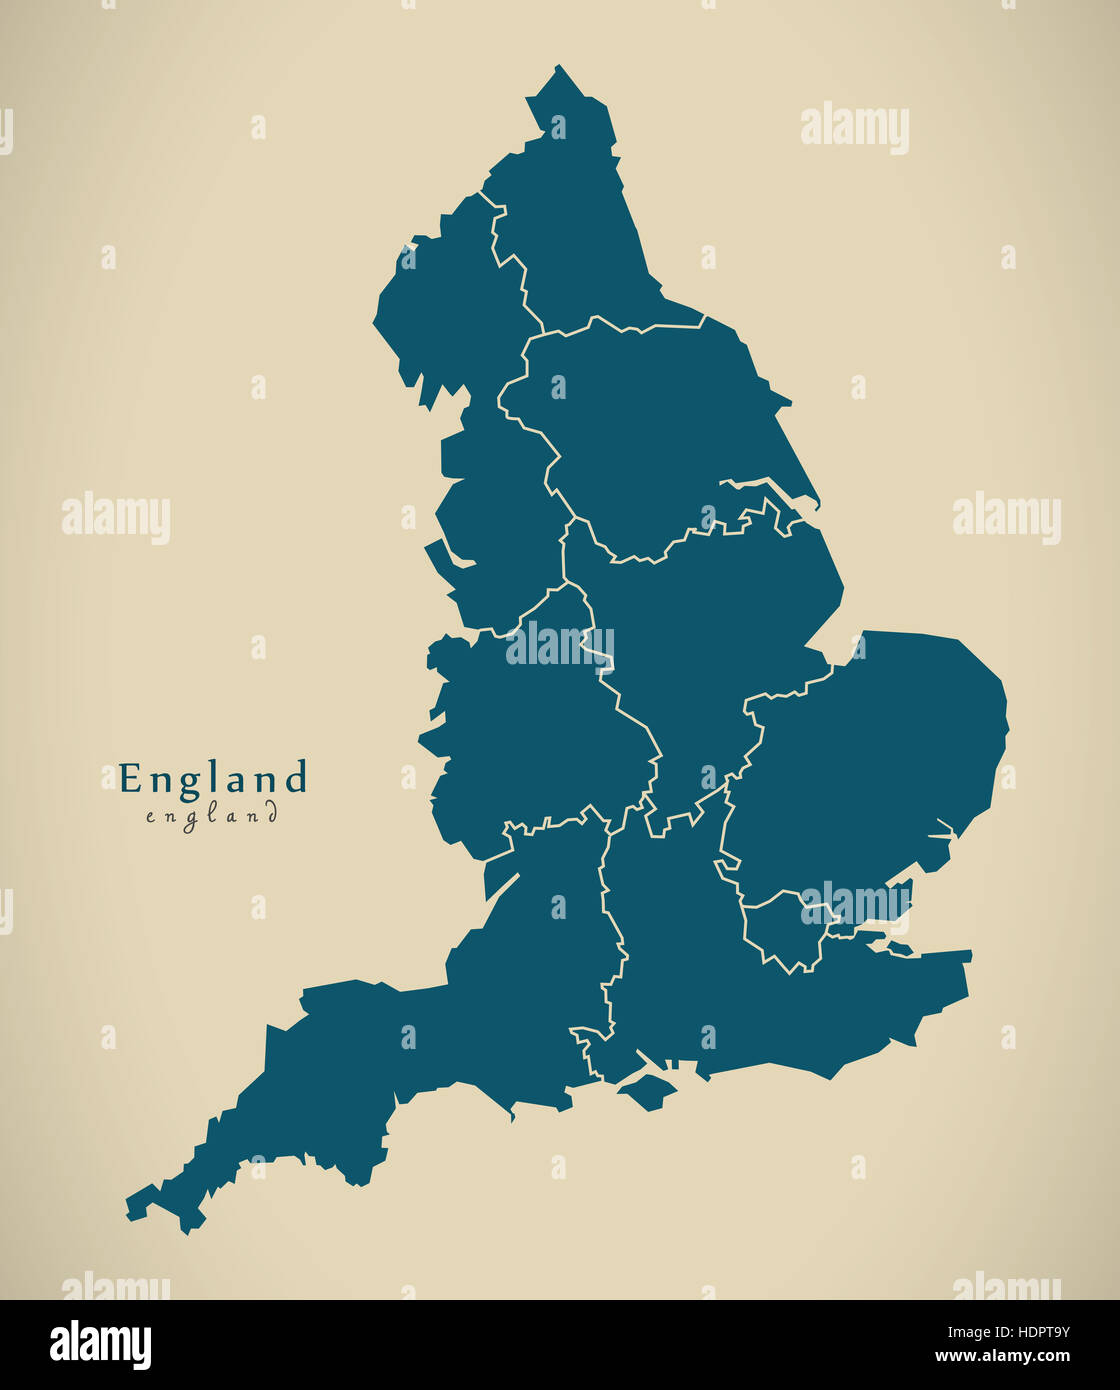 england map showing counties      Another Maps  Get Maps on HD    Full     Map Of UK And Ireland Map of UK Counties in Great Britain Map of Regions Map  Of England And Wales Counties Cities torchbearers info counties england map